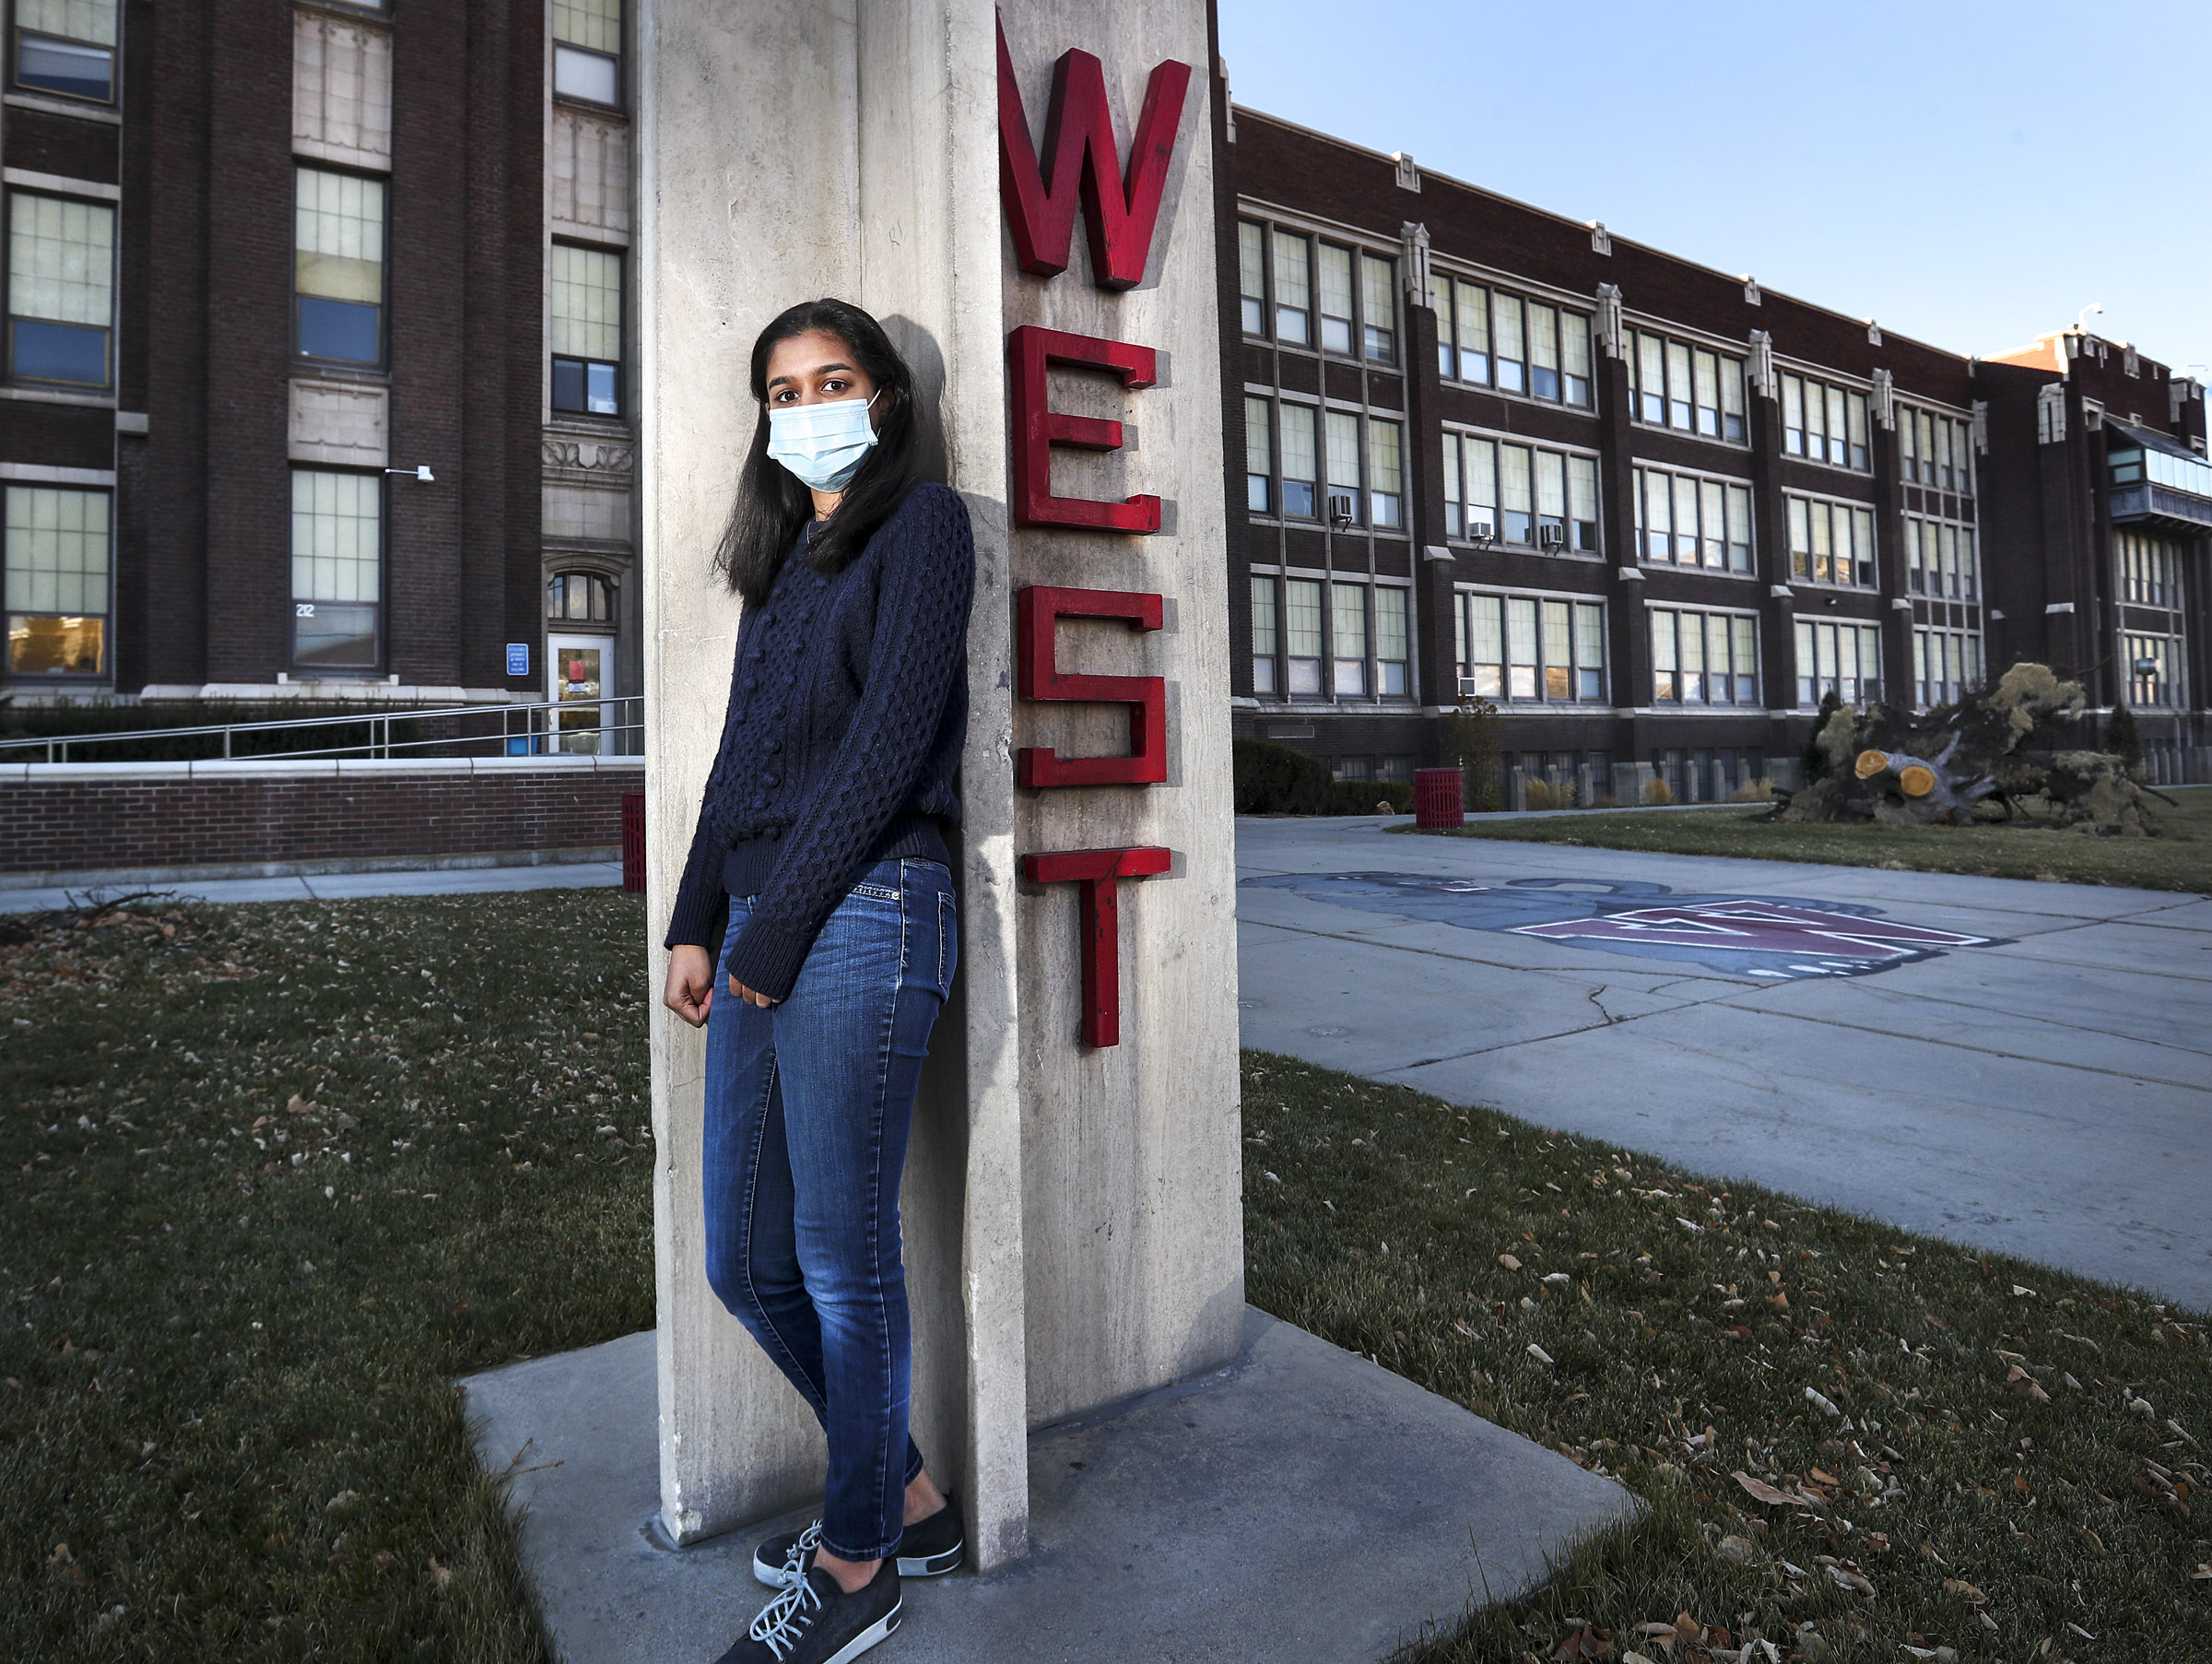 Arundhati Oommen, the nonvoting student member of the Salt Lake City Board of Education student member, poses for a portrait in front of West High School in Salt Lake City on Tuesday, Dec. 1, 2020. Oommen is urging the board to allow 16-year-olds to vote in school board elections because the board's actions impact them significantly.